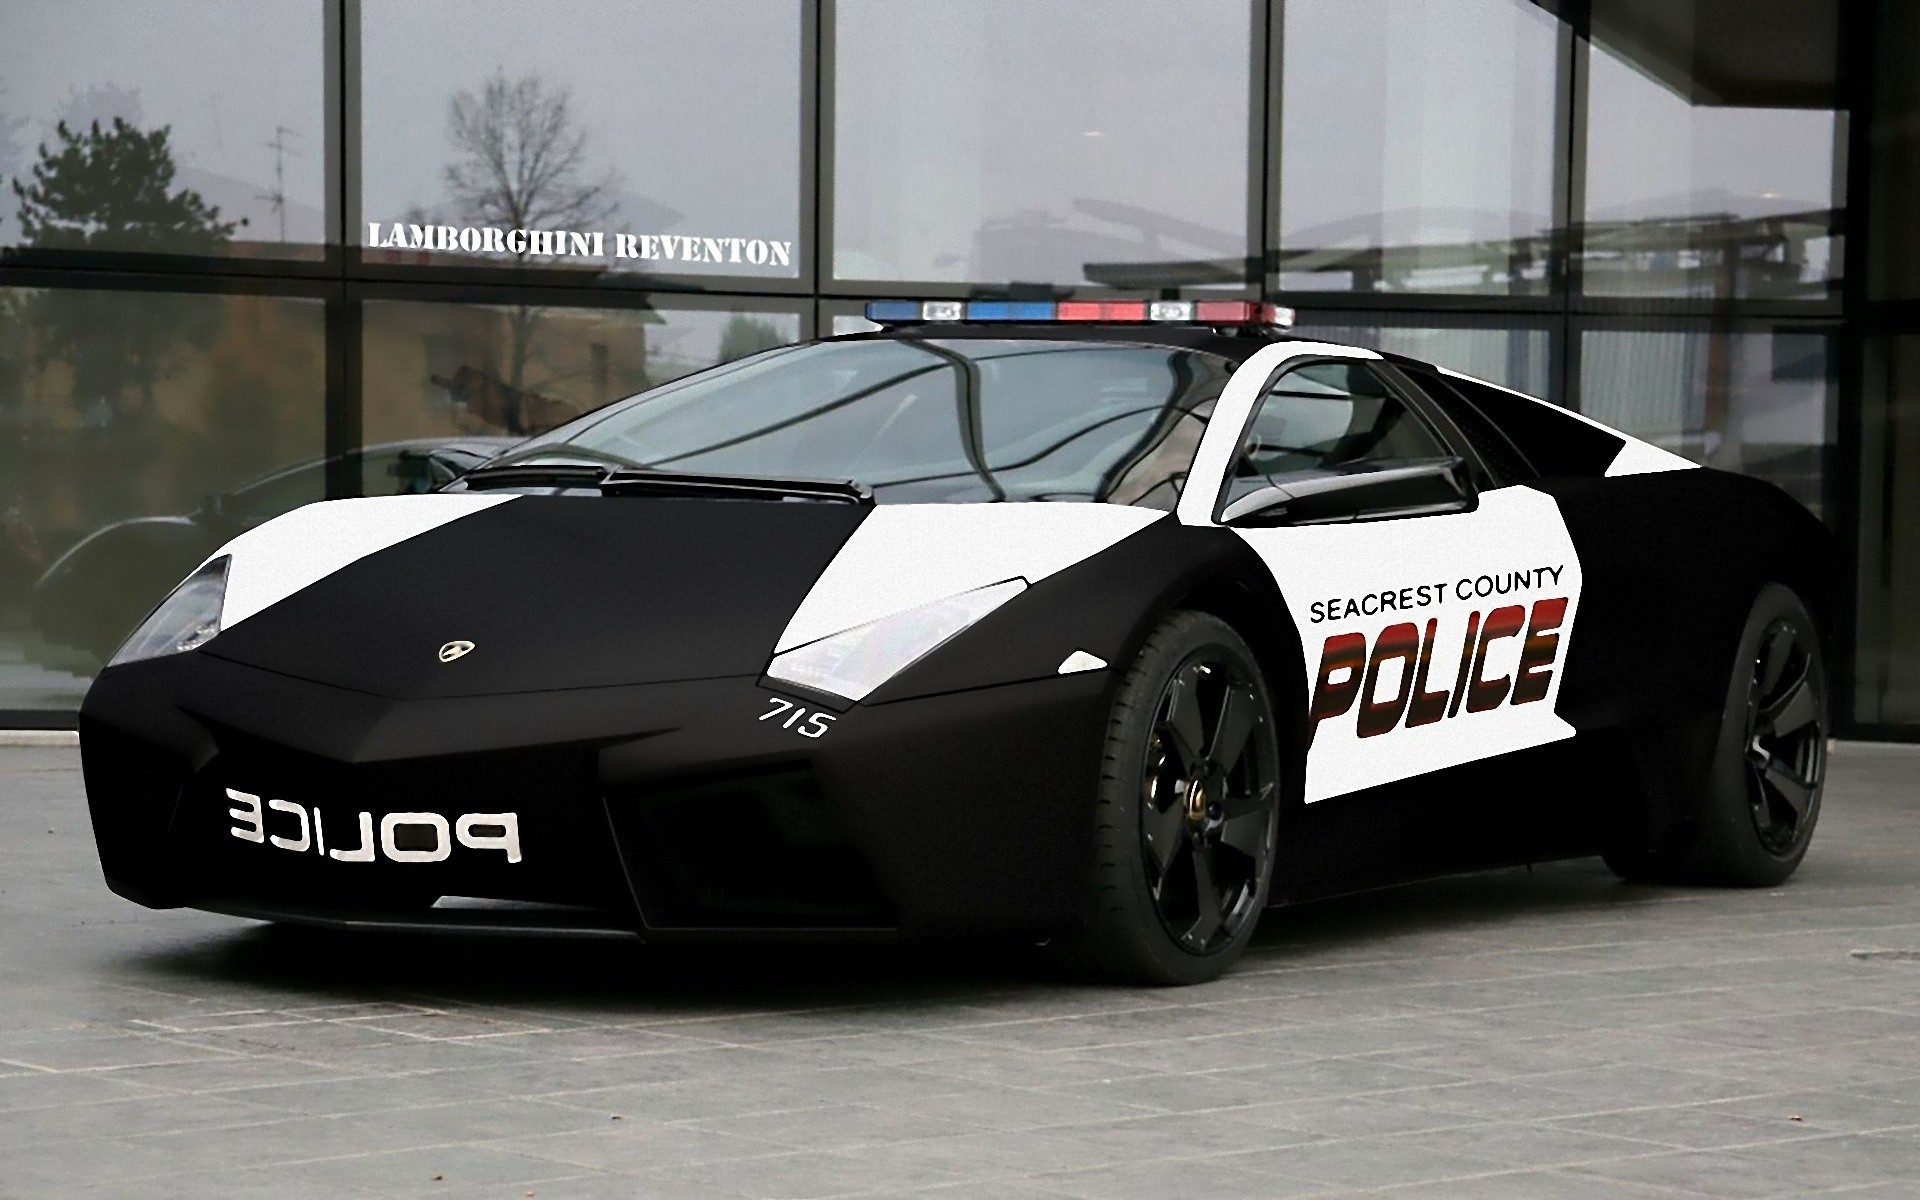 Police Car Wallpaper Backgrounds Wallpapersafari